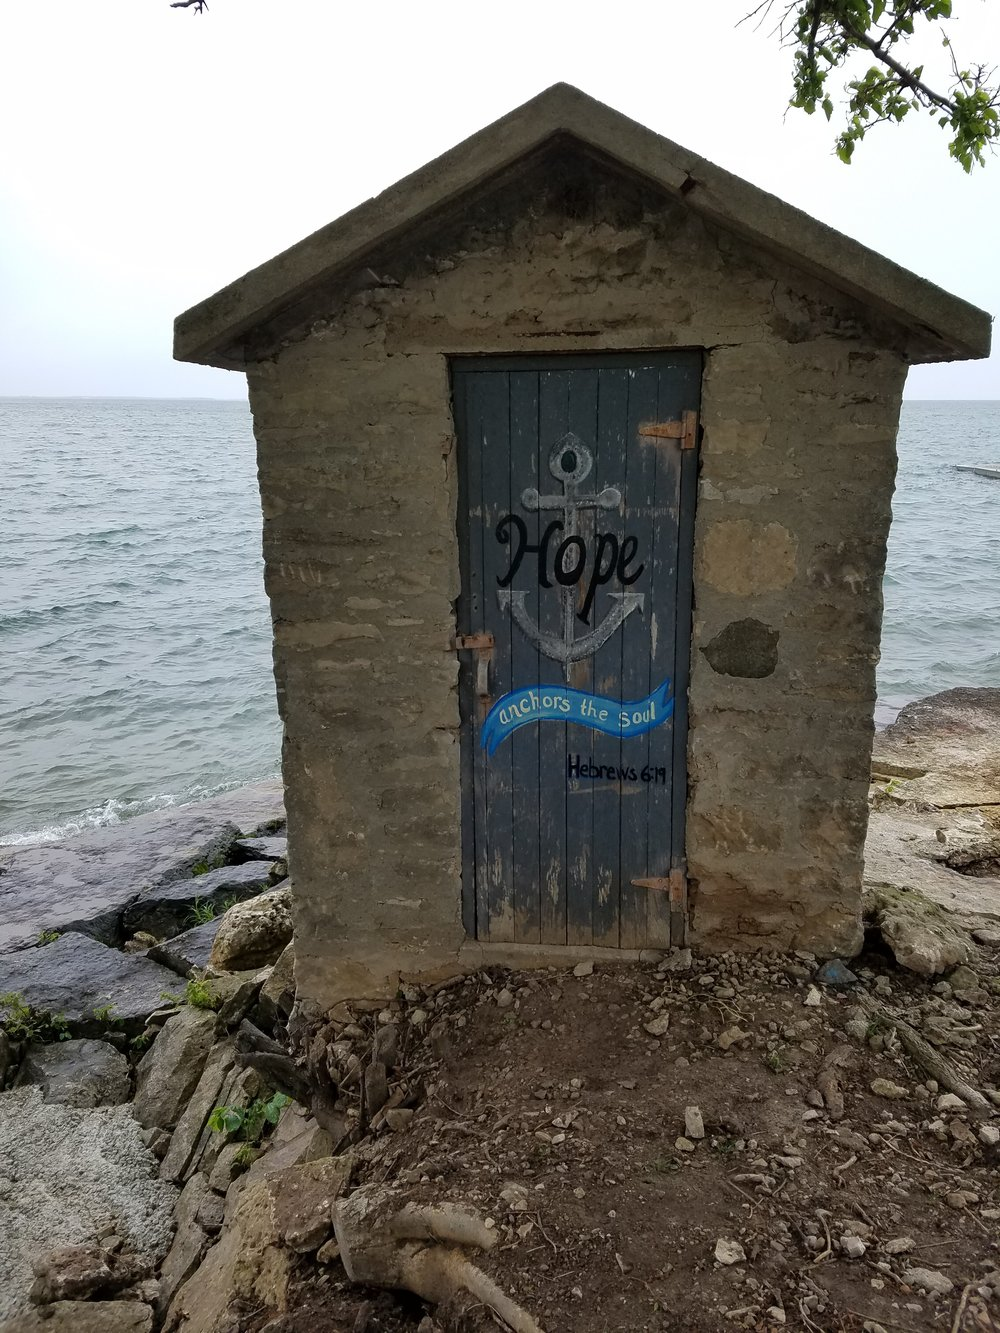 The finished door - after a revision or two. You can't see it, but the waves were crashing so much the water was hitting me as i finished up.